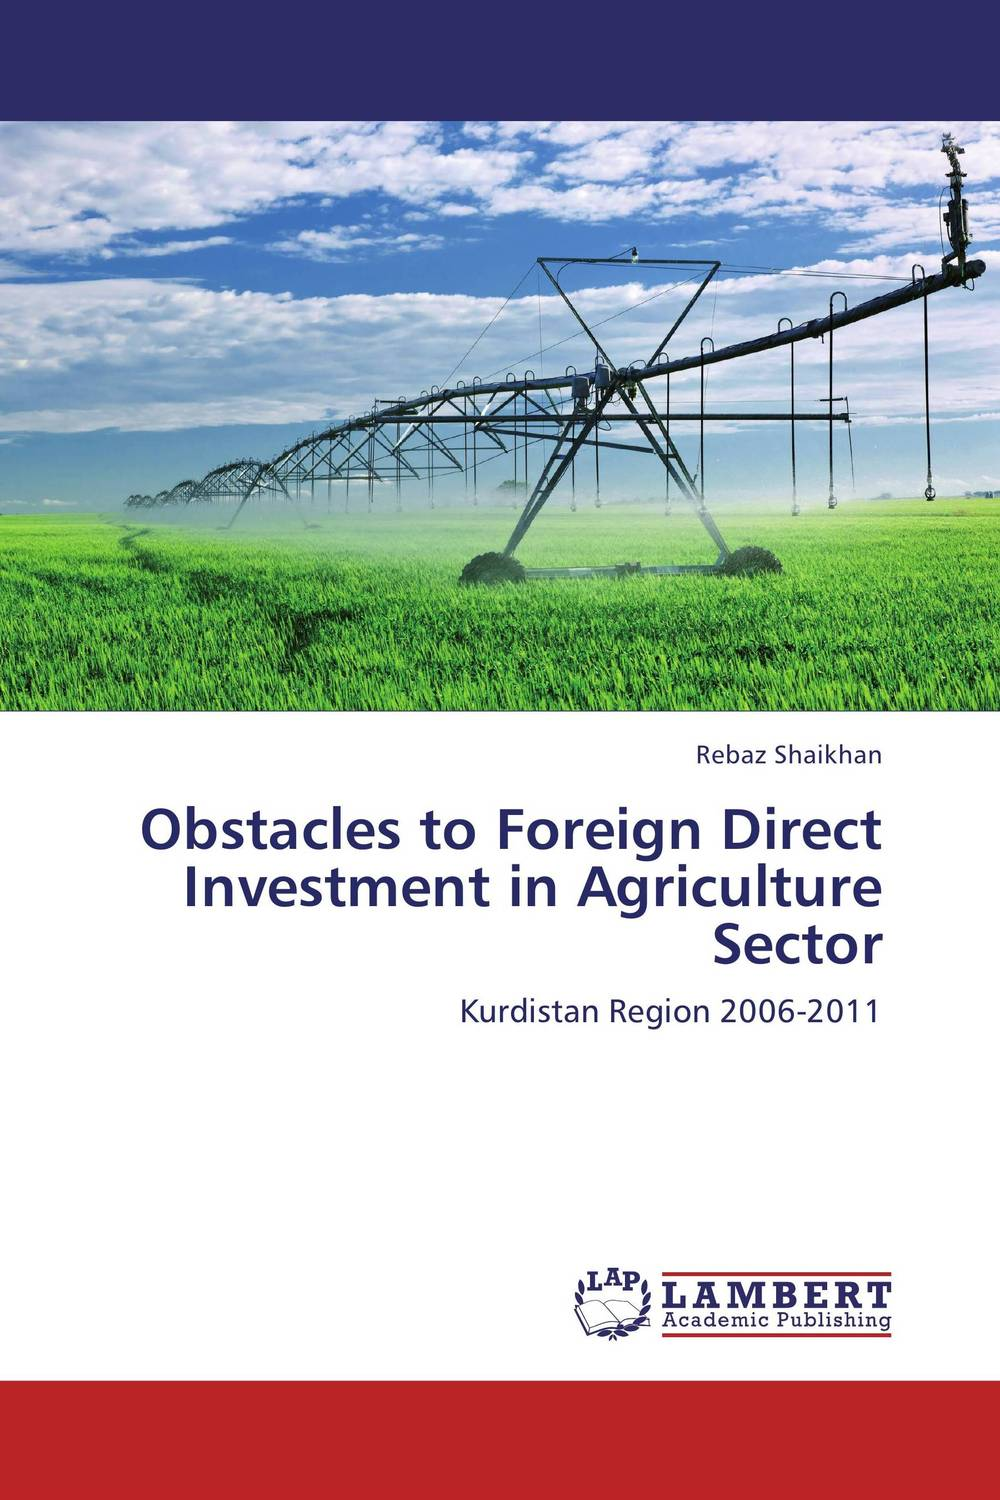 Obstacles to Foreign Direct Investment in Agriculture Sector private equity investment in the healthcare sector